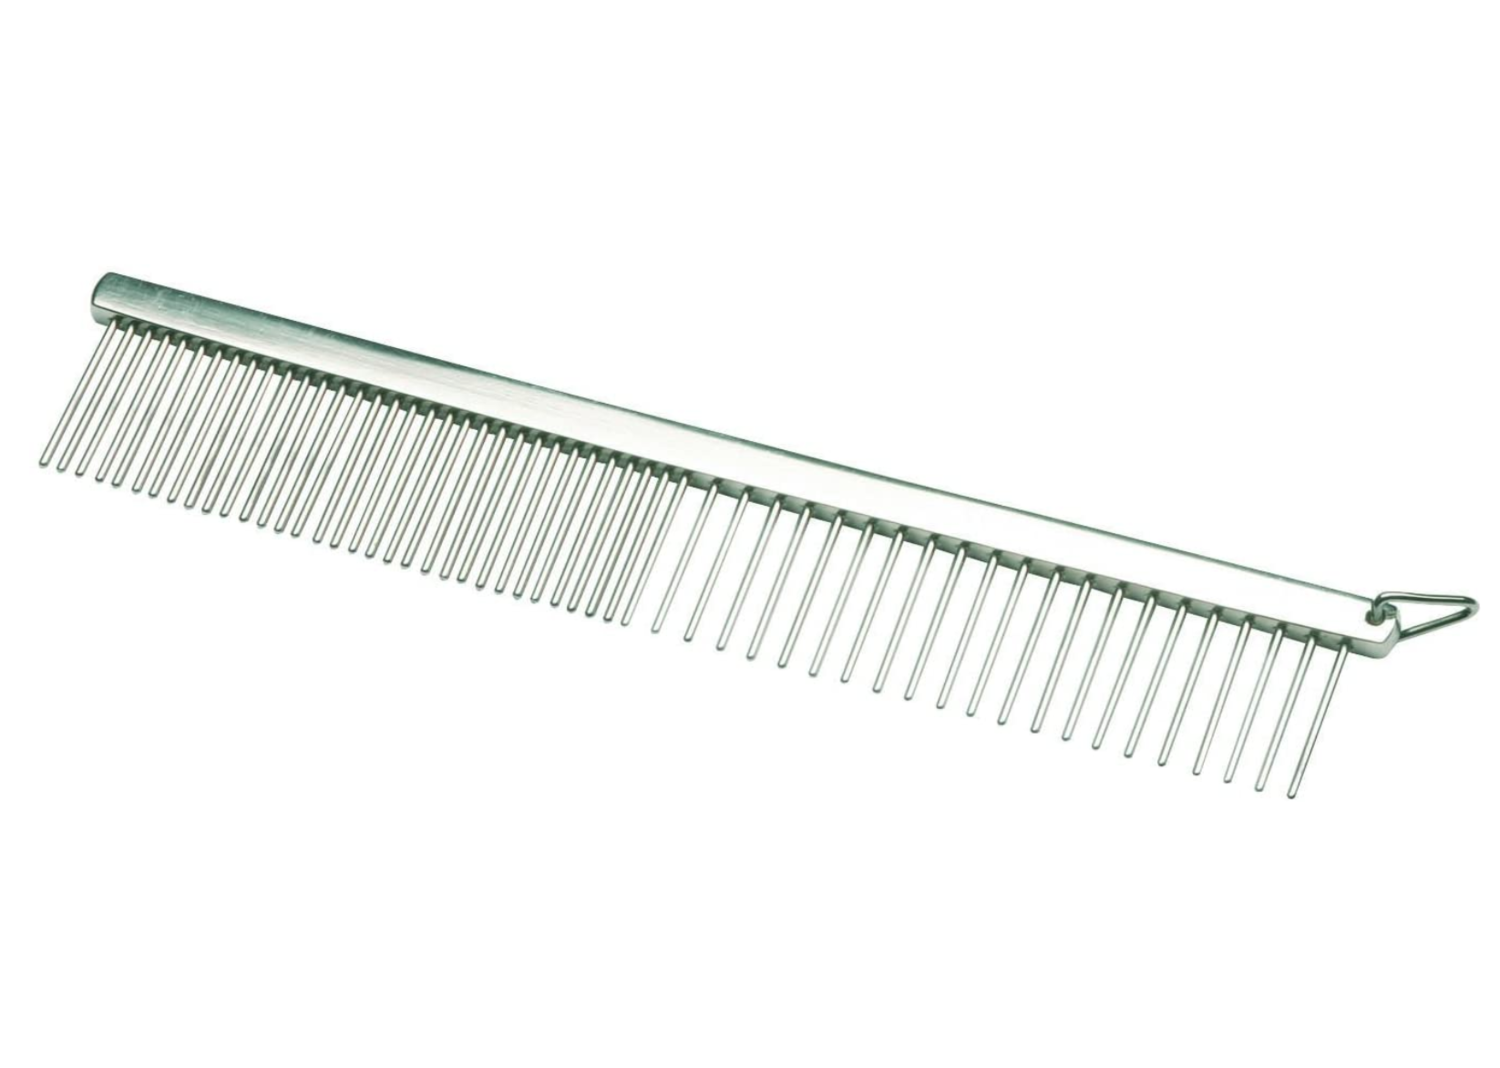 Oster Professional Grooming Comb